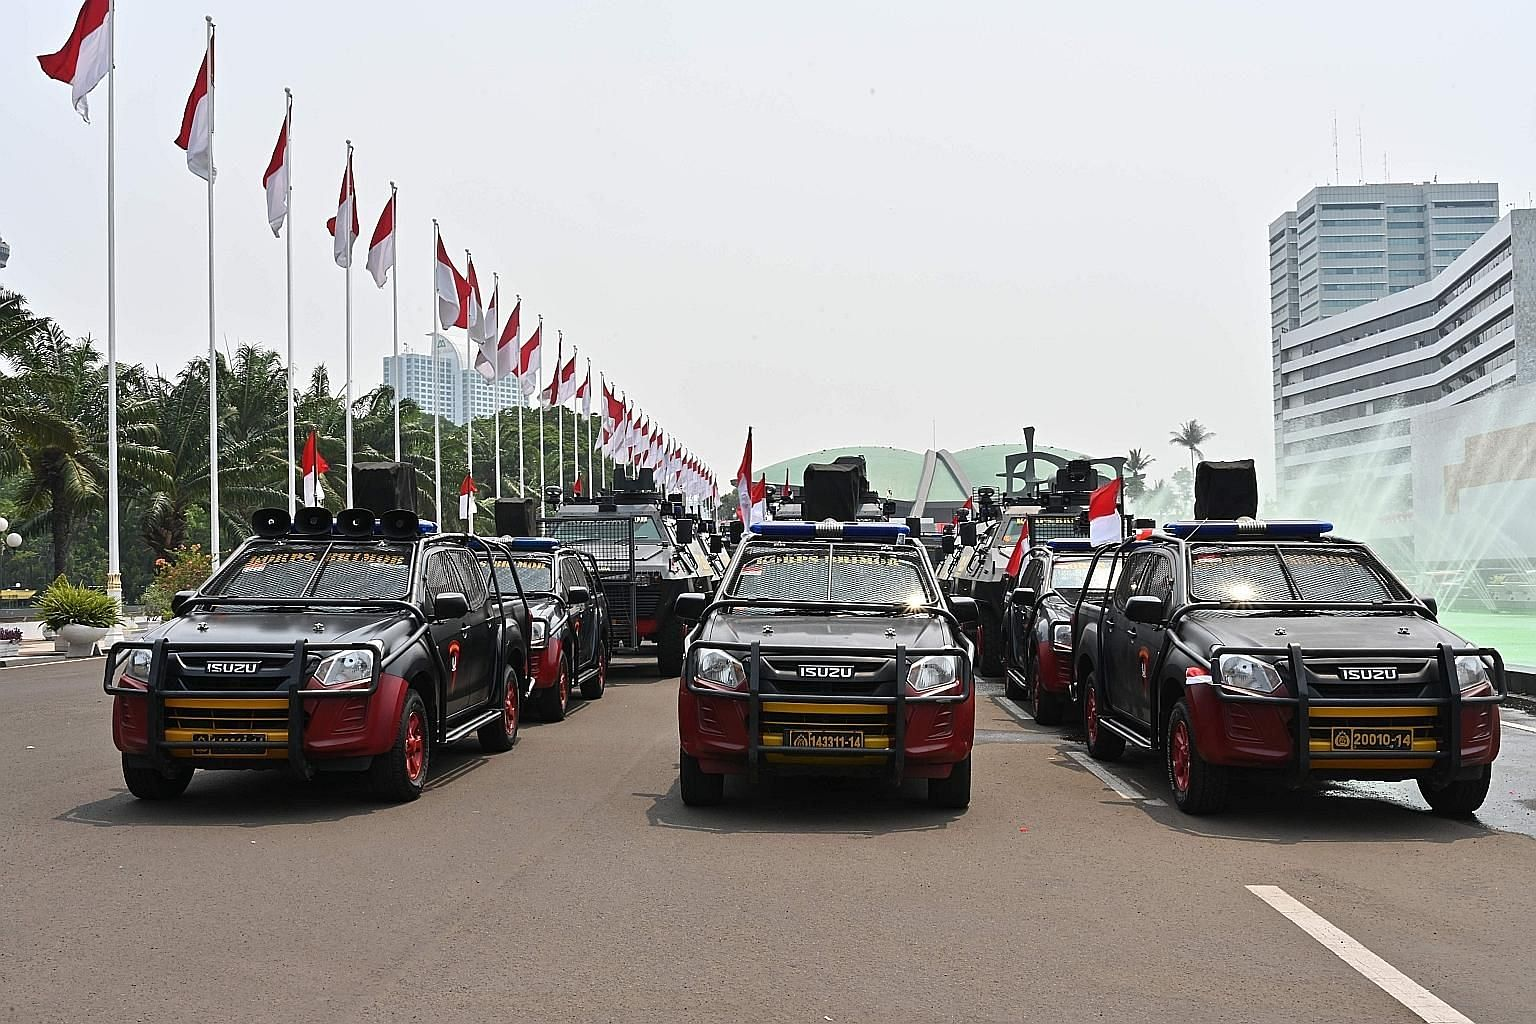 Armoured vehicles stationed in Jakarta ahead of the presidential inauguration on Sunday. The swearing-in of incumbent Indonesian President Joko Widodo will be conducted at the Parliament building in the capital, witnessed by a number of foreign leade